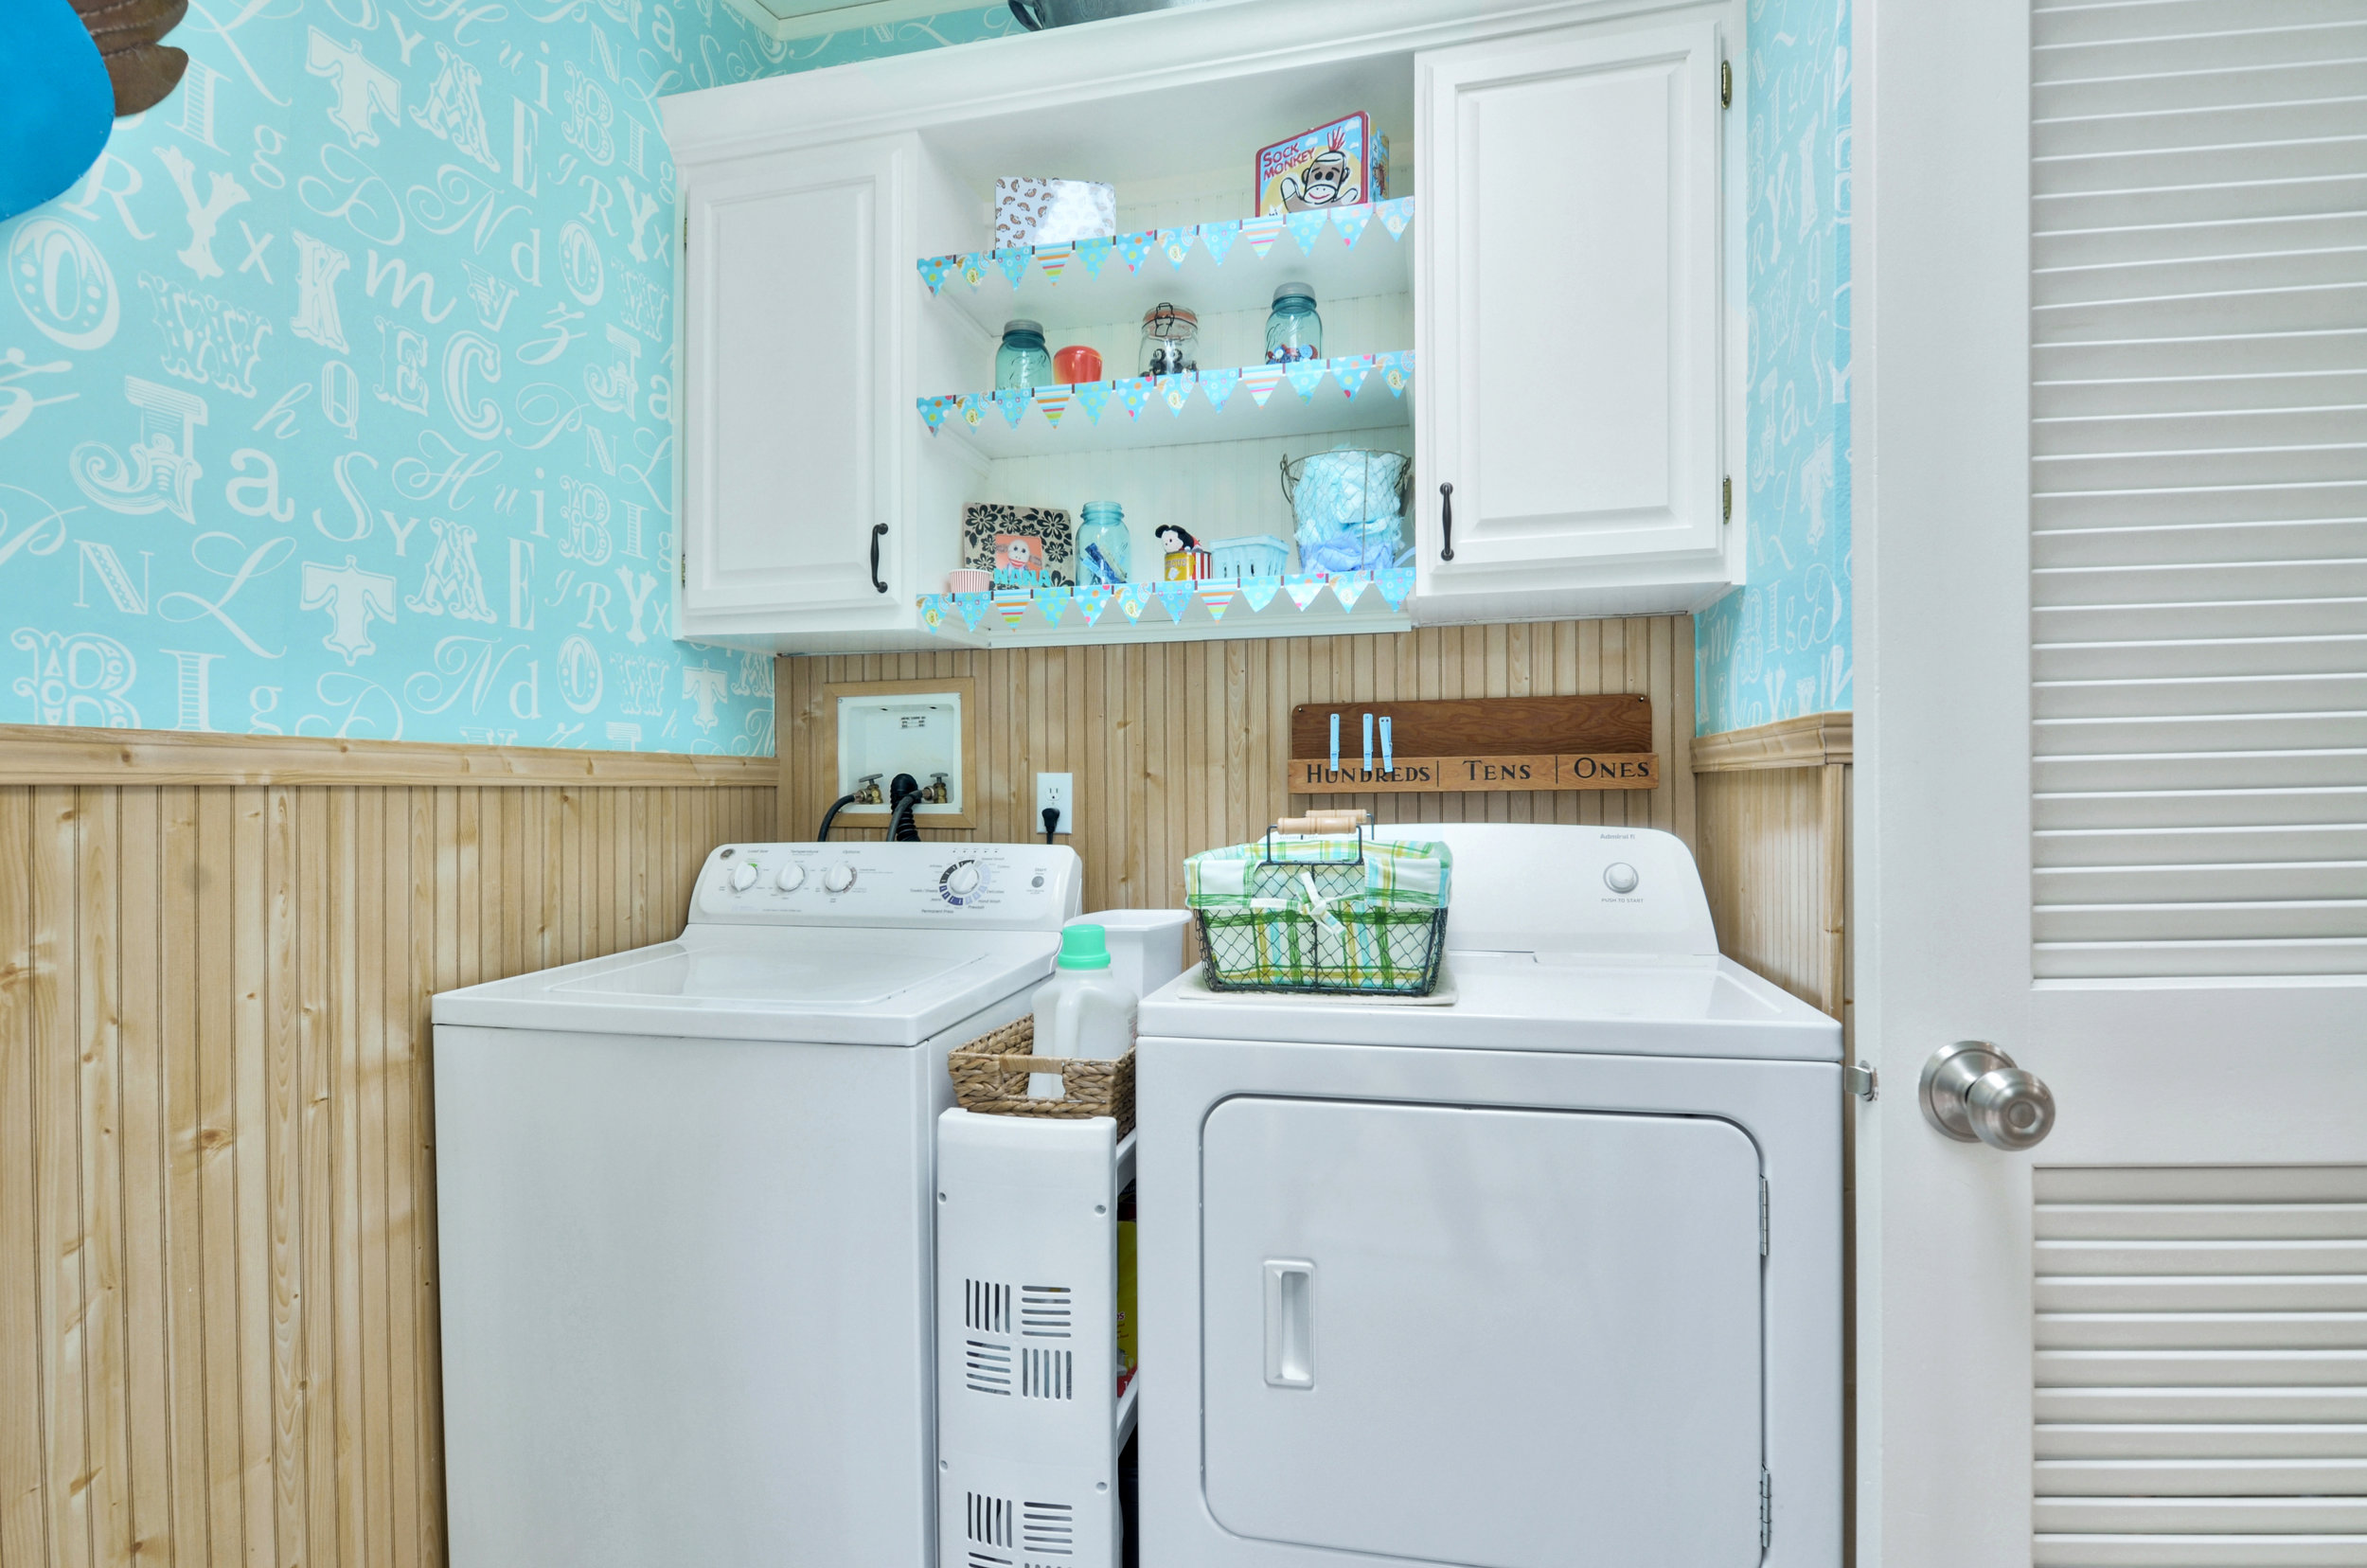 The laundry room isn't only functional and conveniently located off the kitchen, it's also super cute! There's a water hook-up in here if you'd like to install a utility sink. Shelves and cupboards above the washer and dryer give you a good spot for all your detergents, and a back door (with doggie door) leads out to the deck.